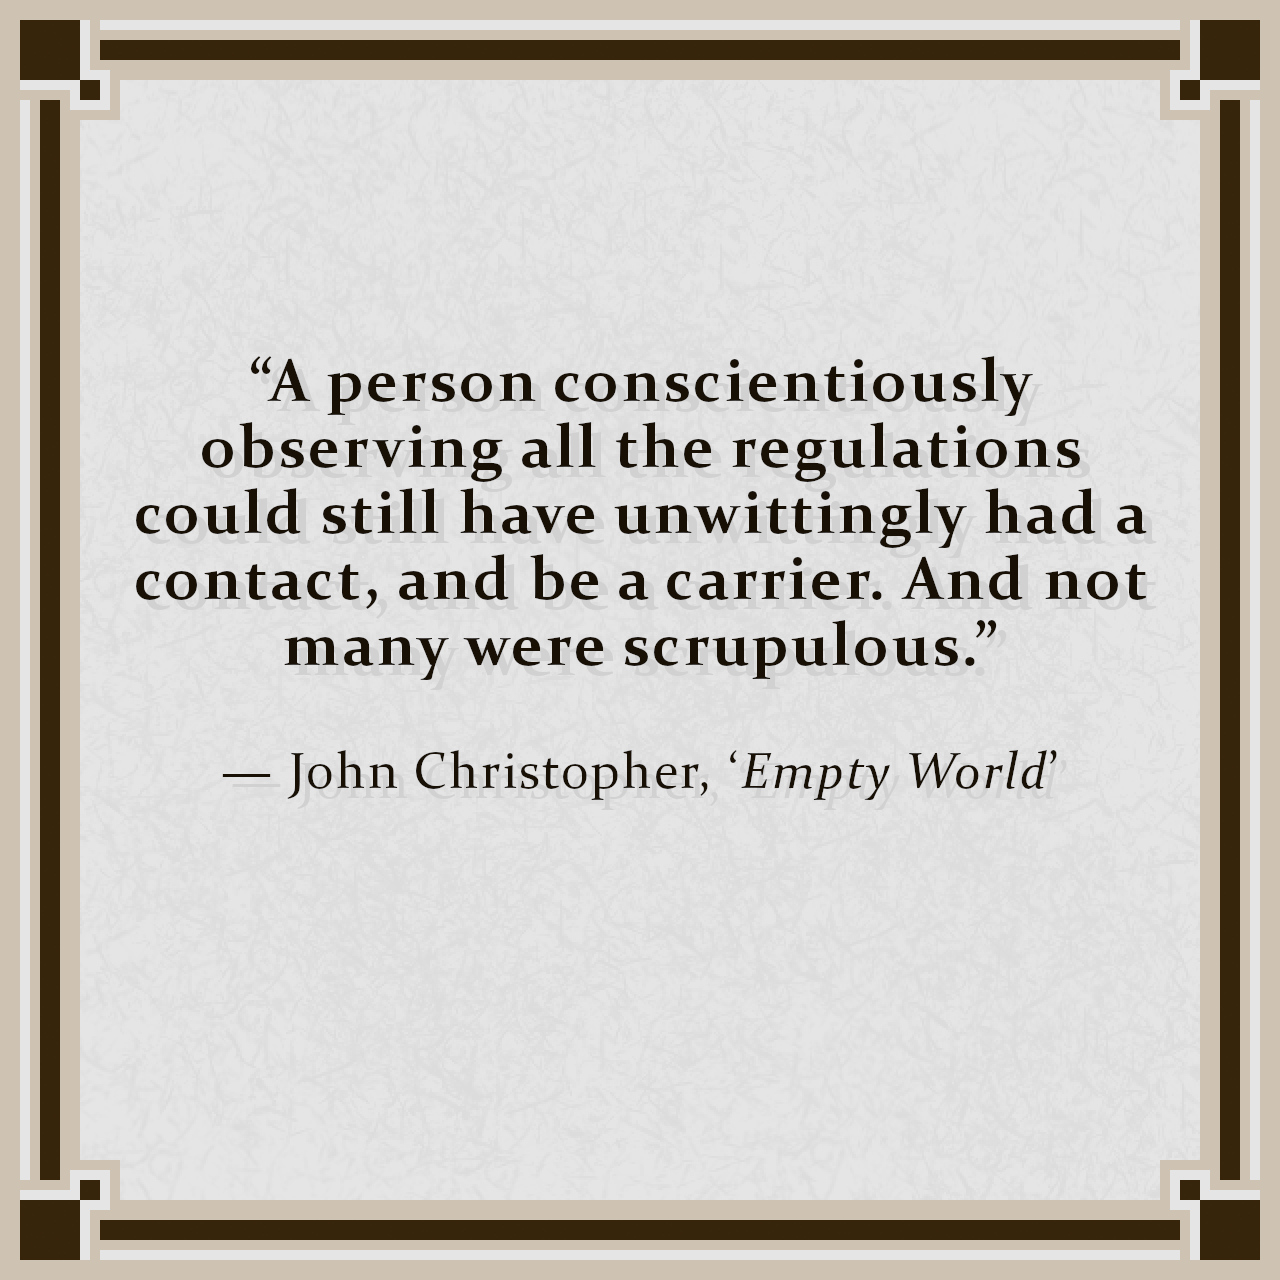 """""""A person conscientiously observing all the regulations could still have unwittingly had a contact, and be a carrier. And not many were scrupulous."""" — John Christopher, 'Empty World'"""